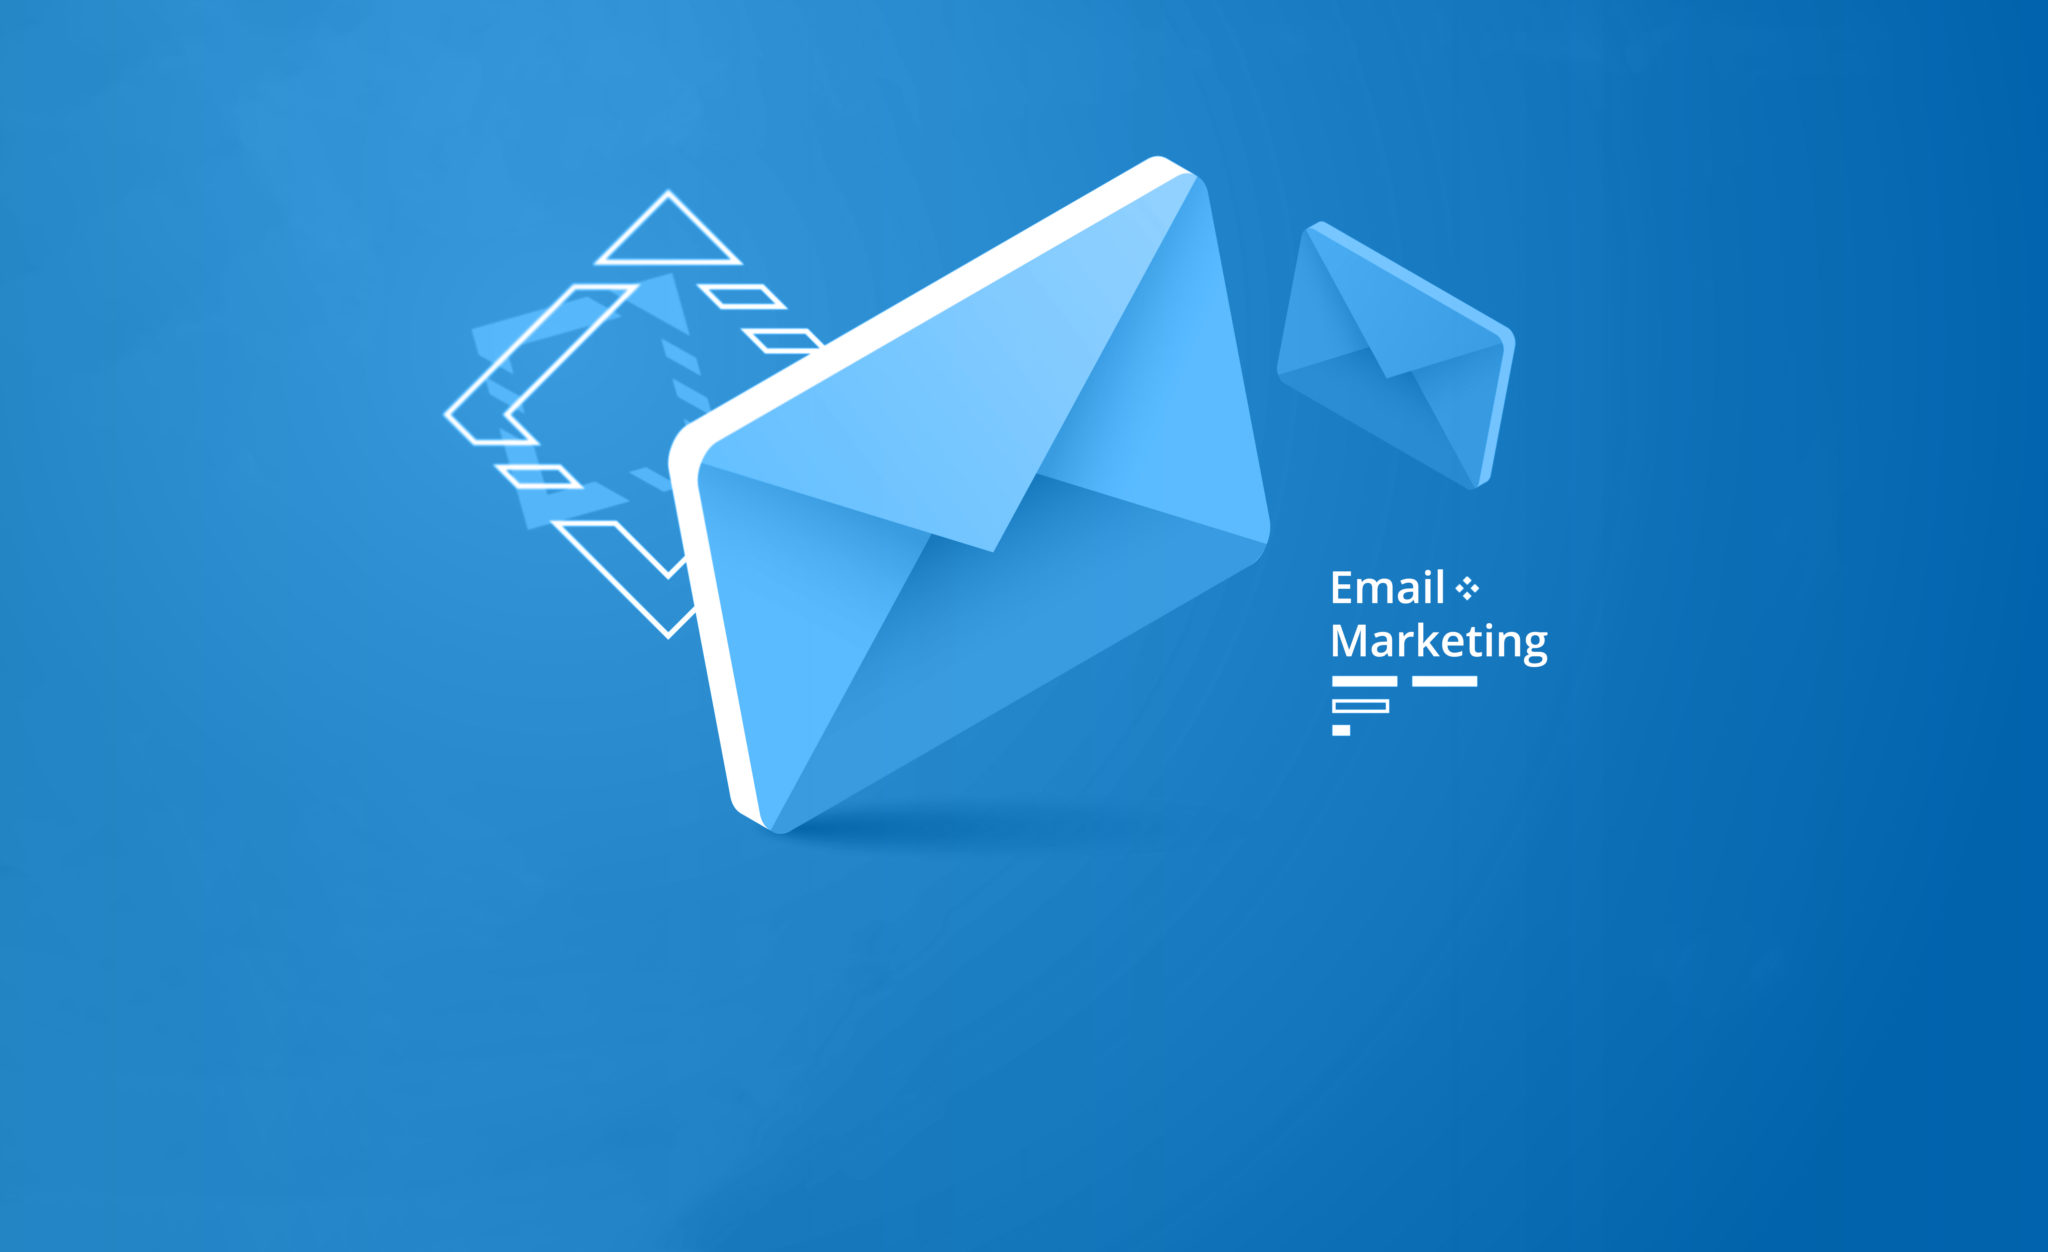 Email Marketing, Marketing Automation, Emailing Capoffshore